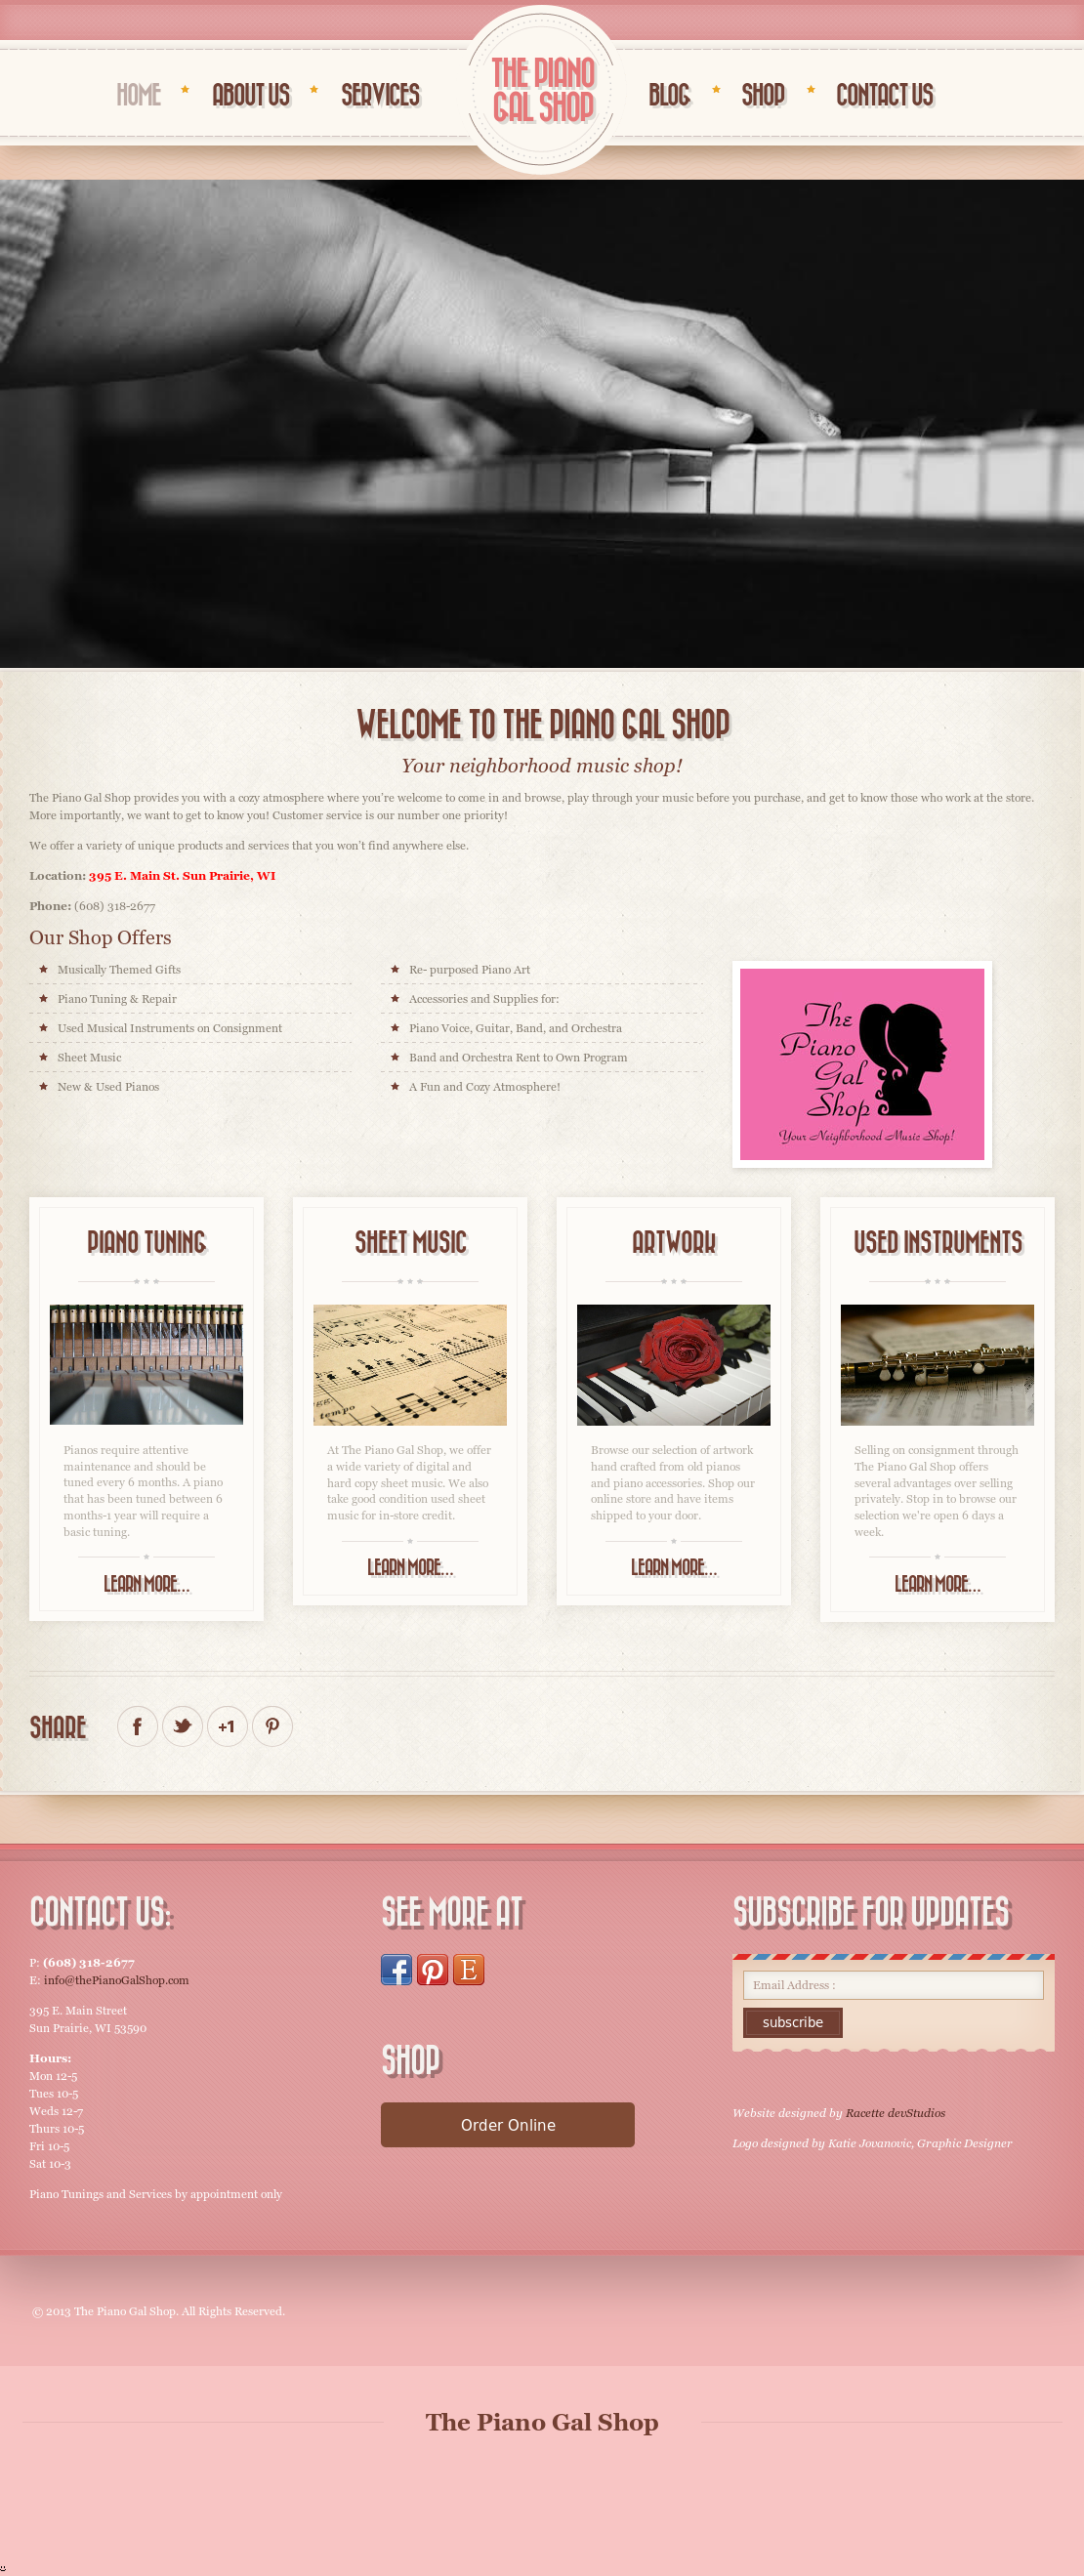 Owler Reports - The Piano Gal Shop Blog What is a pinblock